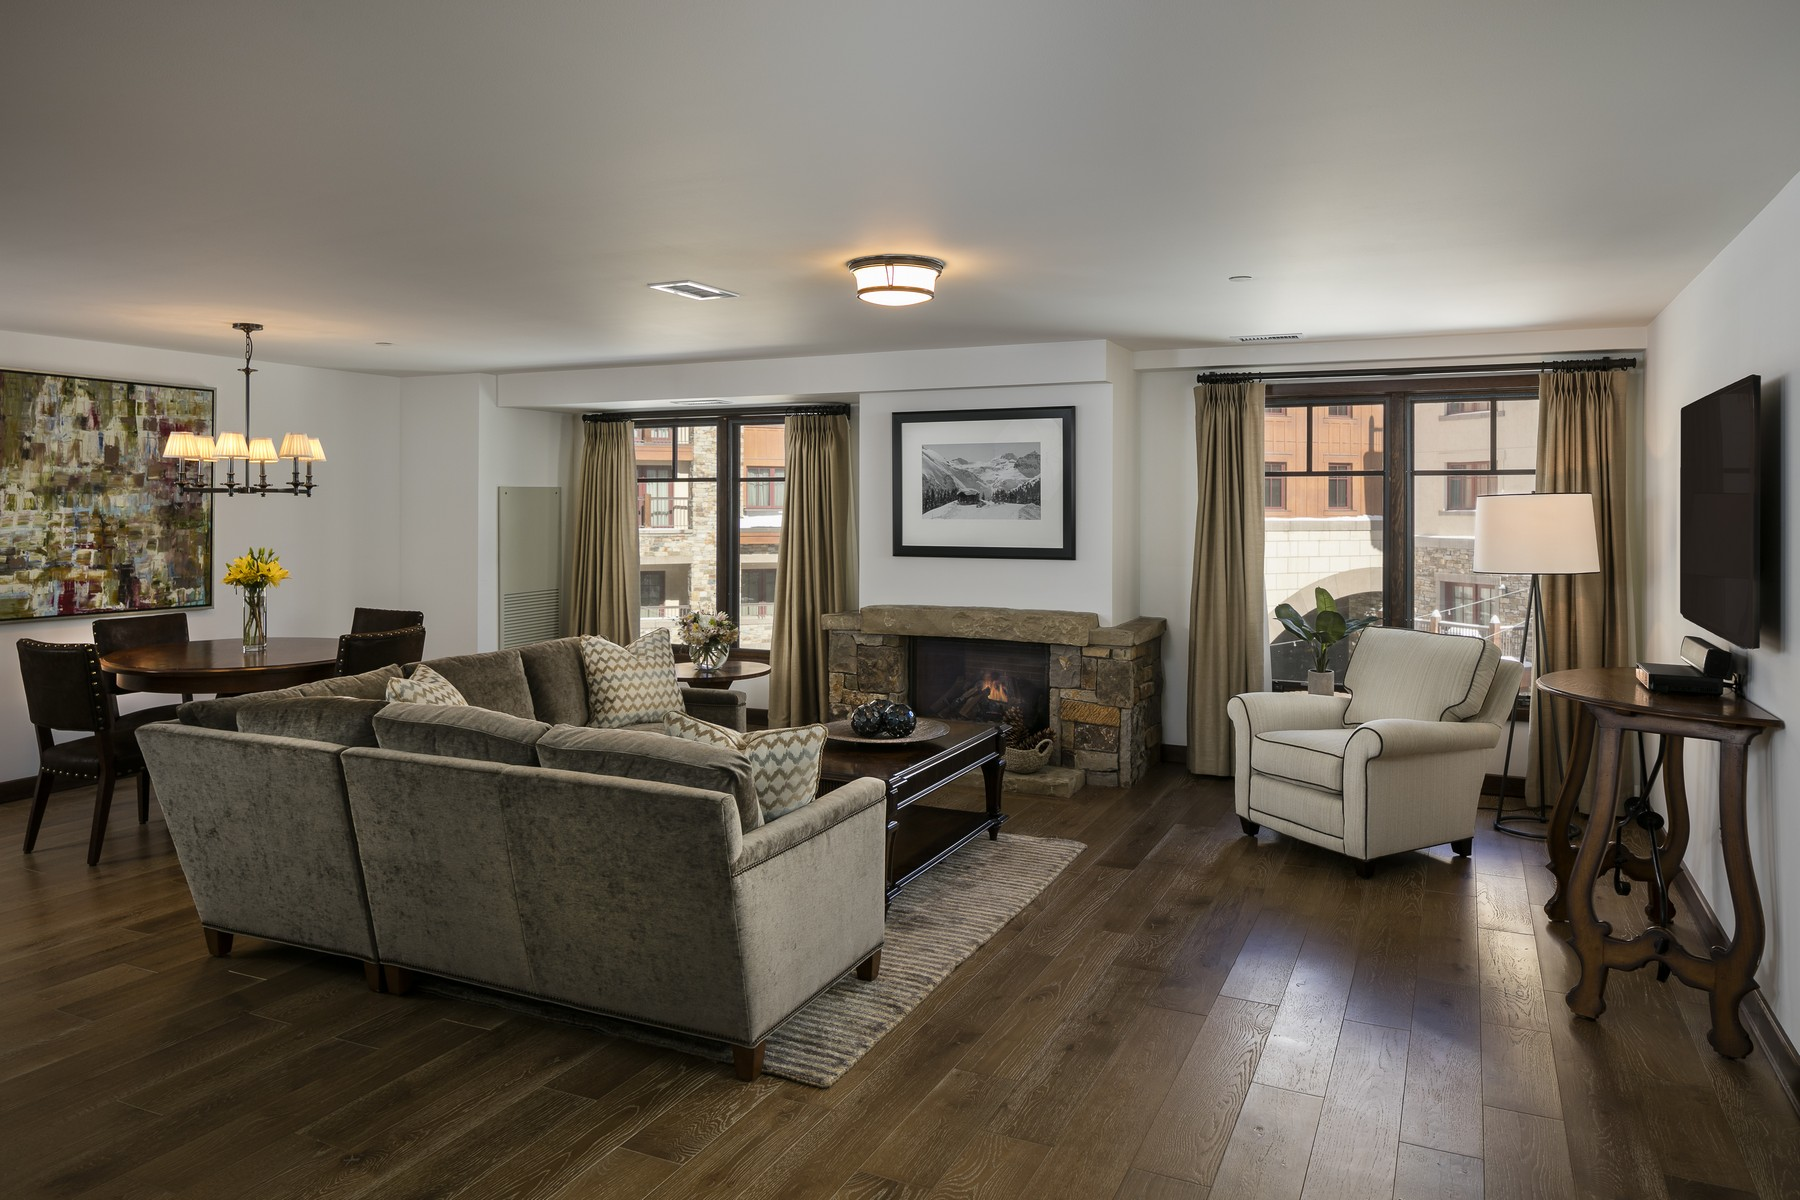 Condominium for Sale at Residence 1303, Madeline Hotel & Residences 568 Mountain Village Boulevard, Residence 1303 Telluride, Colorado, 81435 United States